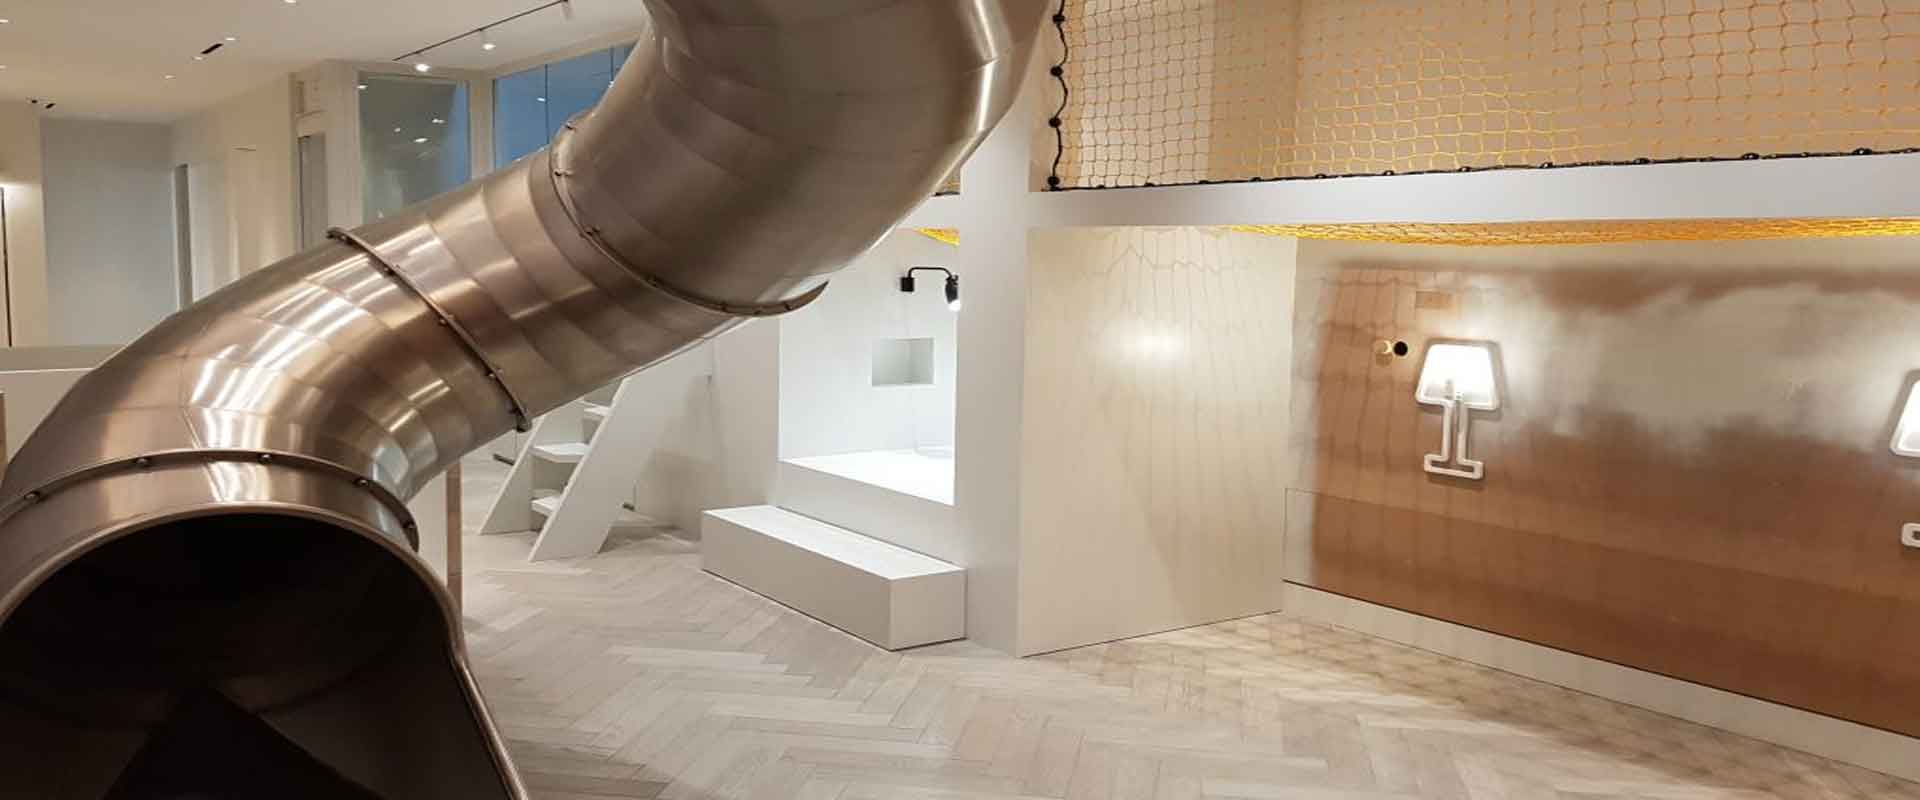 Slide-and-play-nook